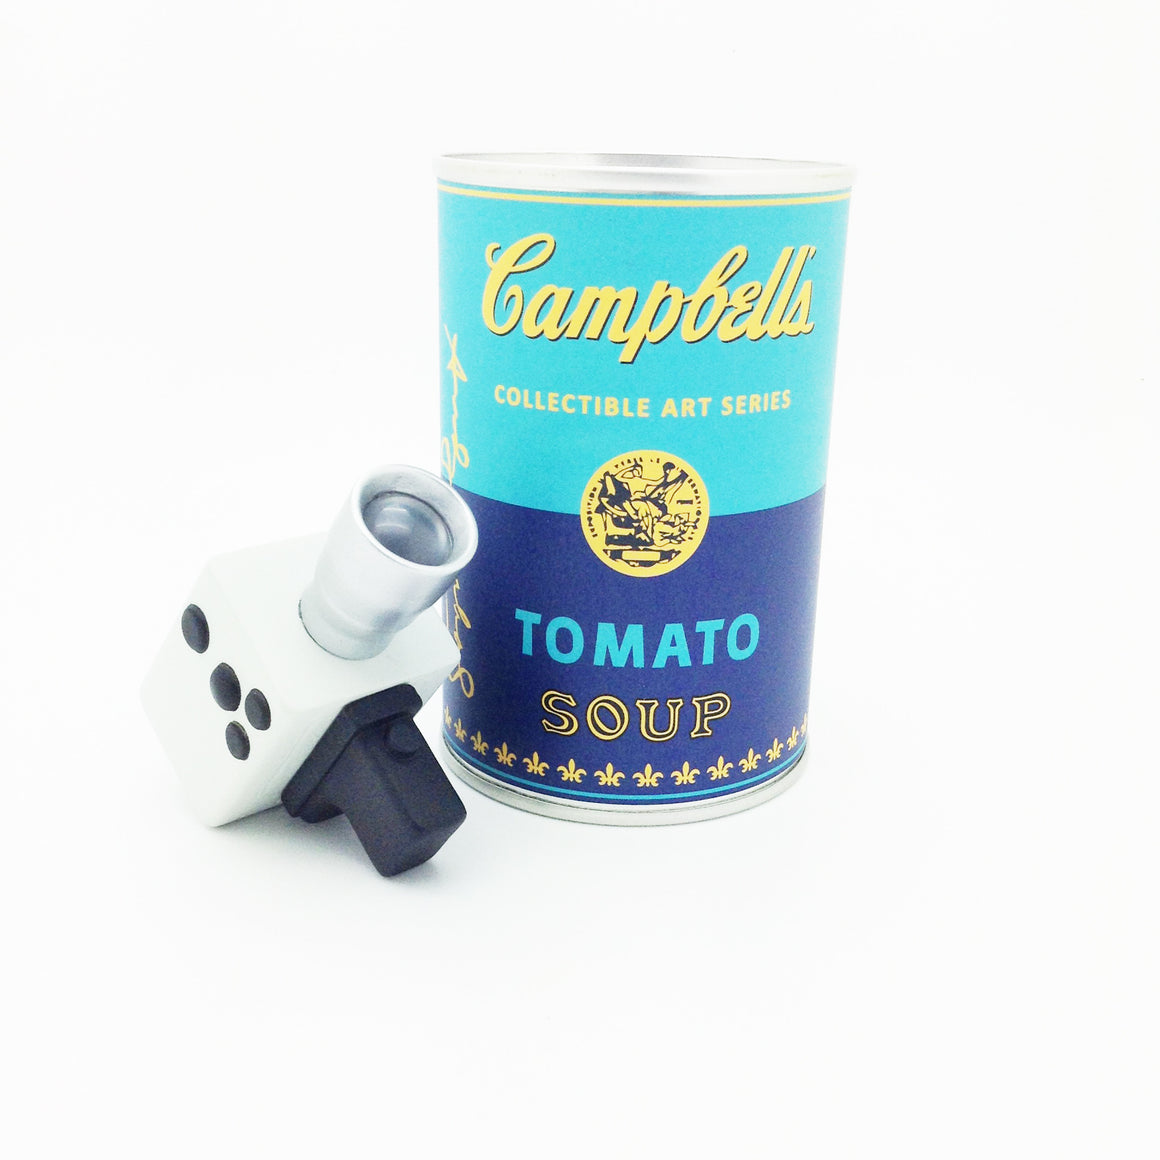 Andy Warhol Soup Can Minis Blind Box - Vinyl Camcorder